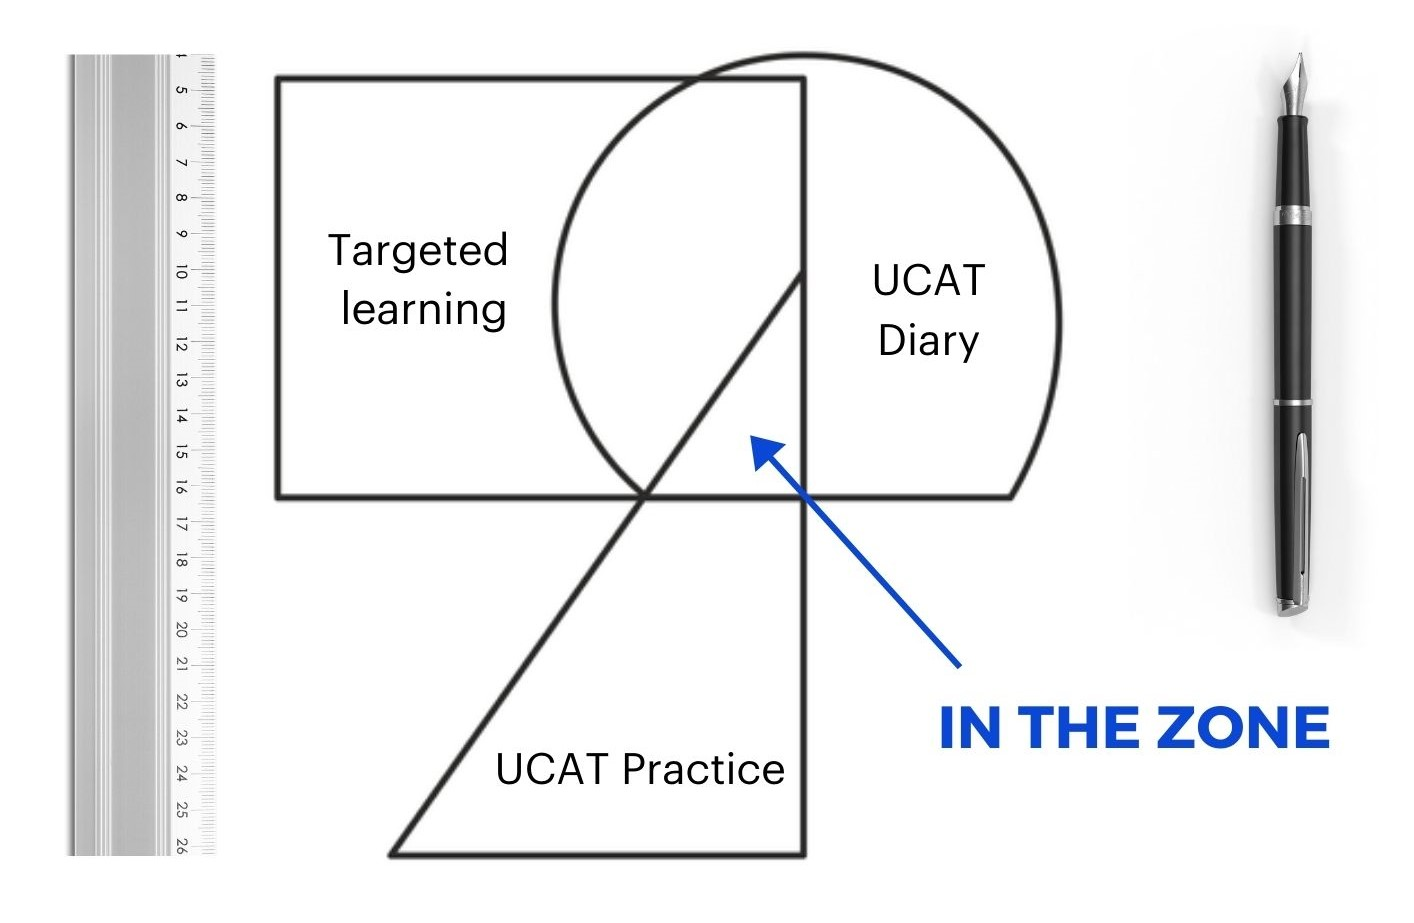 In the UCAT zone: a Venn Diagram with UCAT practice, UCAT diary and targeted learning